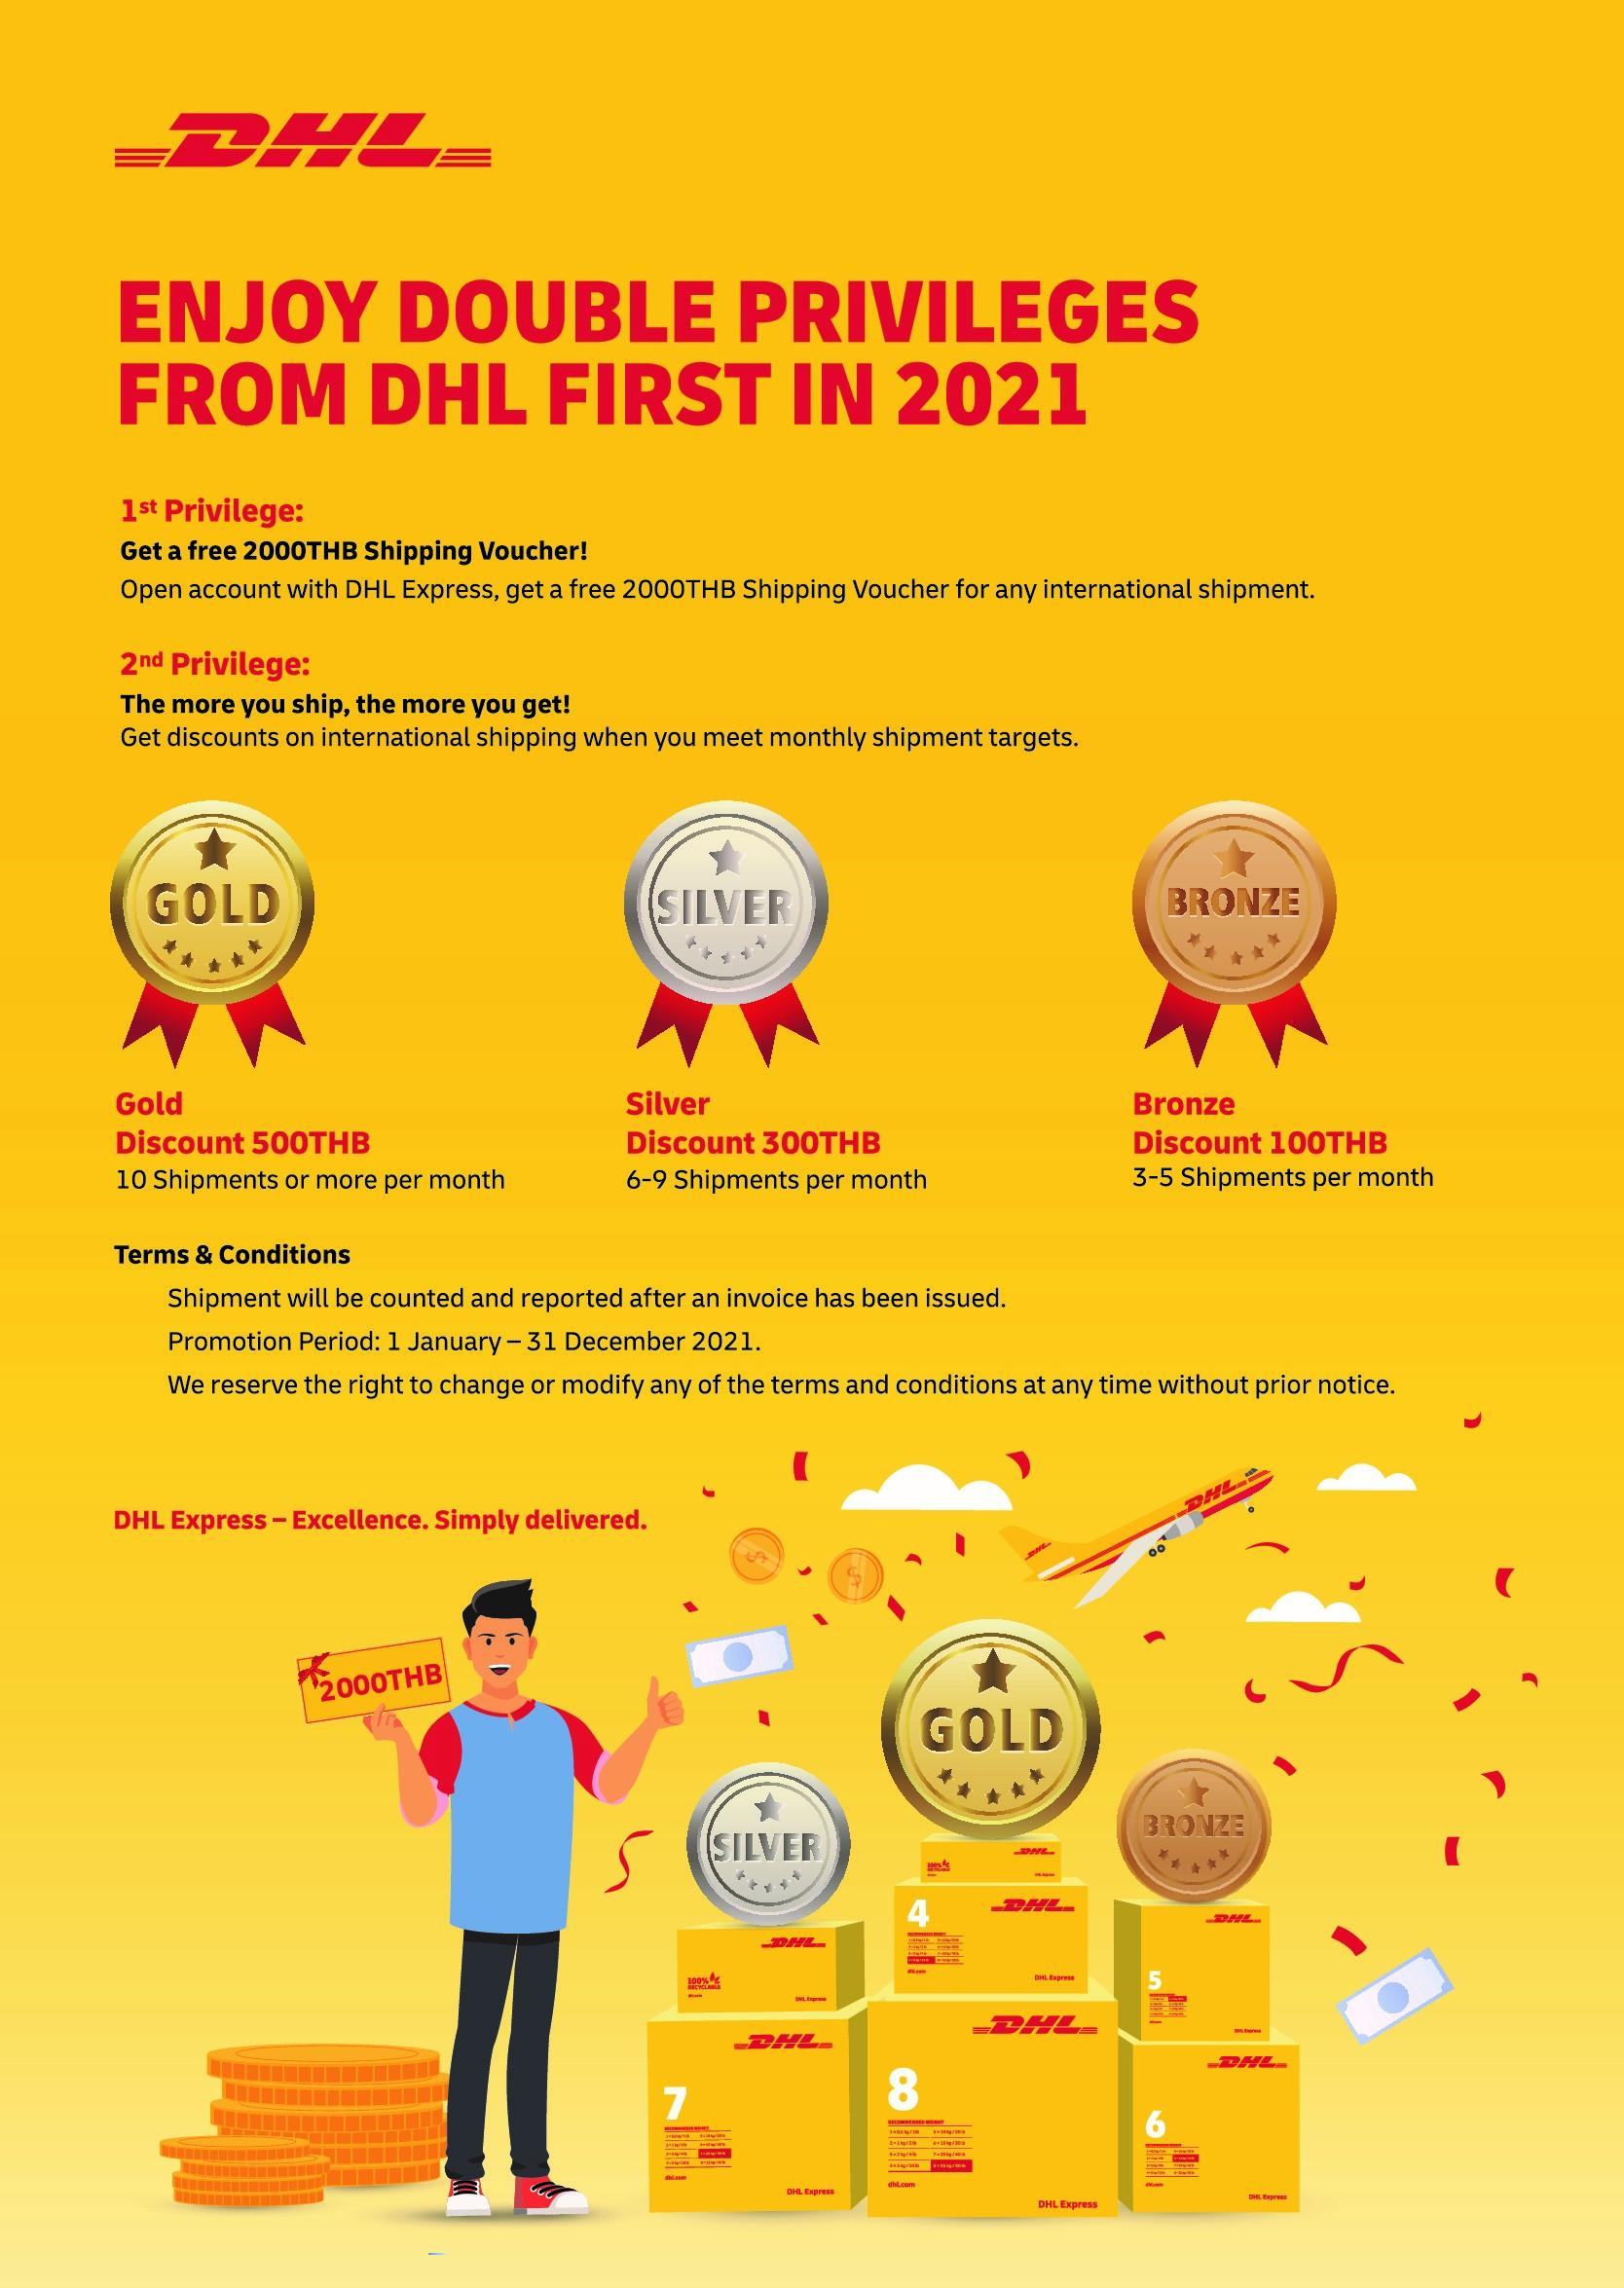 DHL FIRST. SHIP MORE, GET MORE!